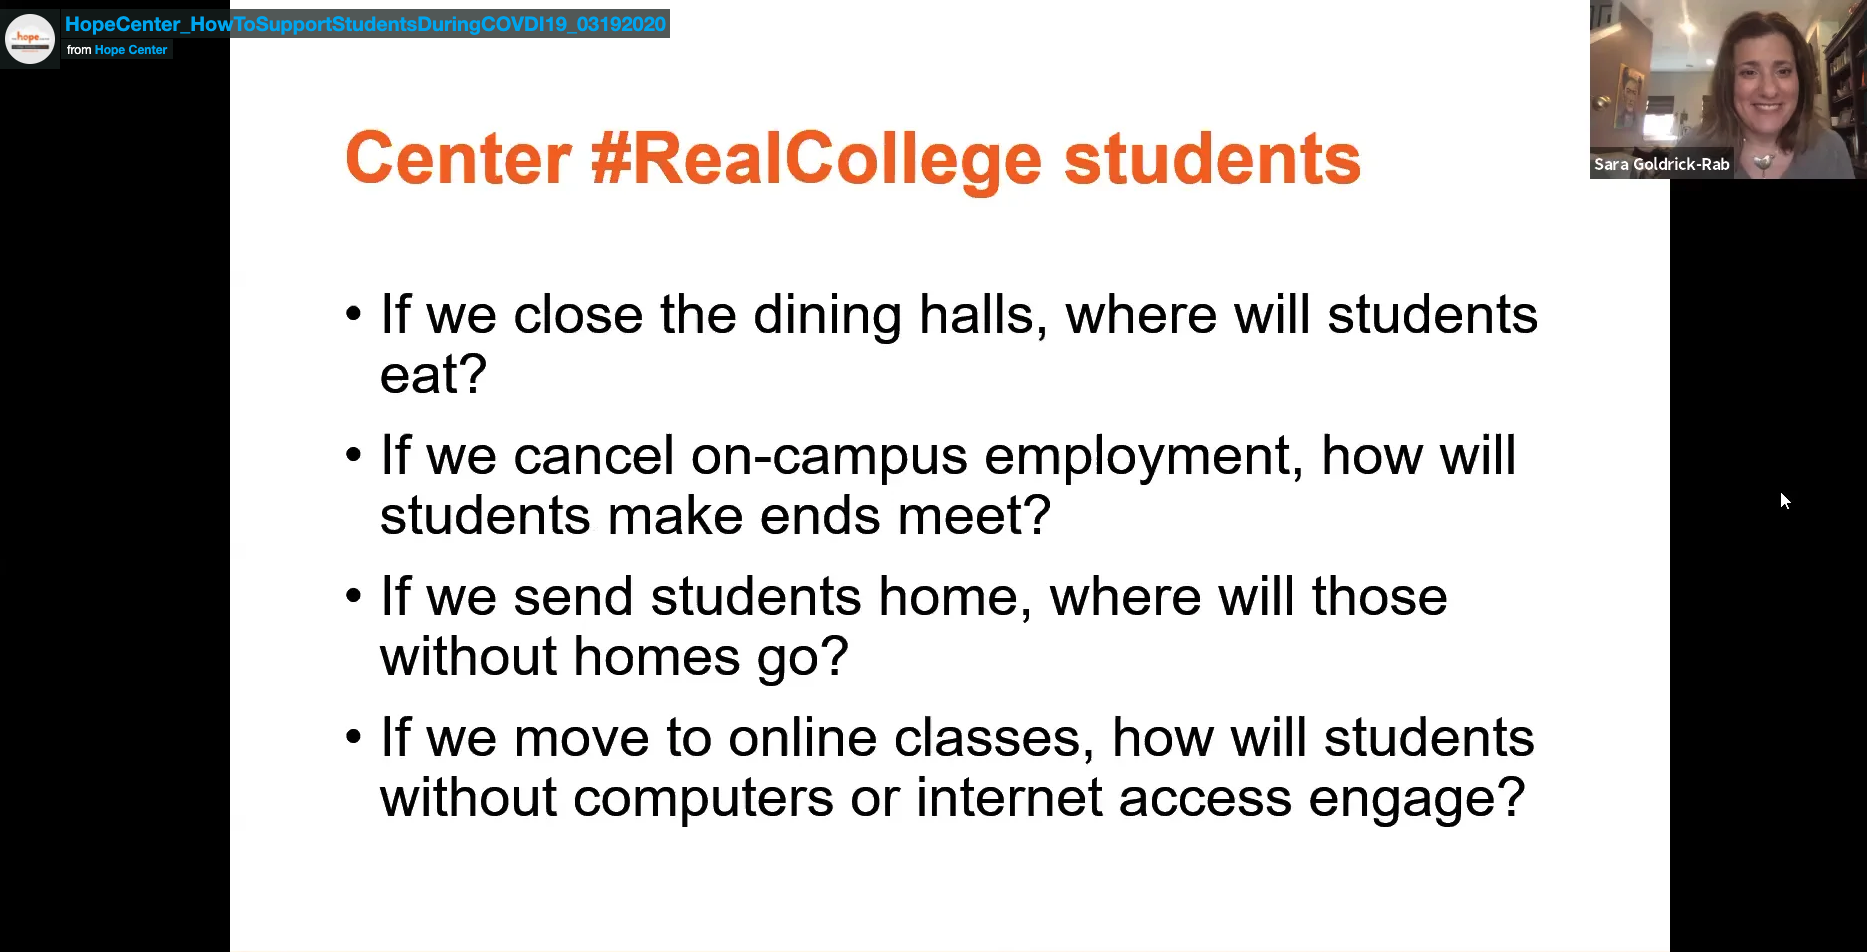 Webinar-Meeting Student's Basic Needs and Keeping them Enrolled During COVID-19